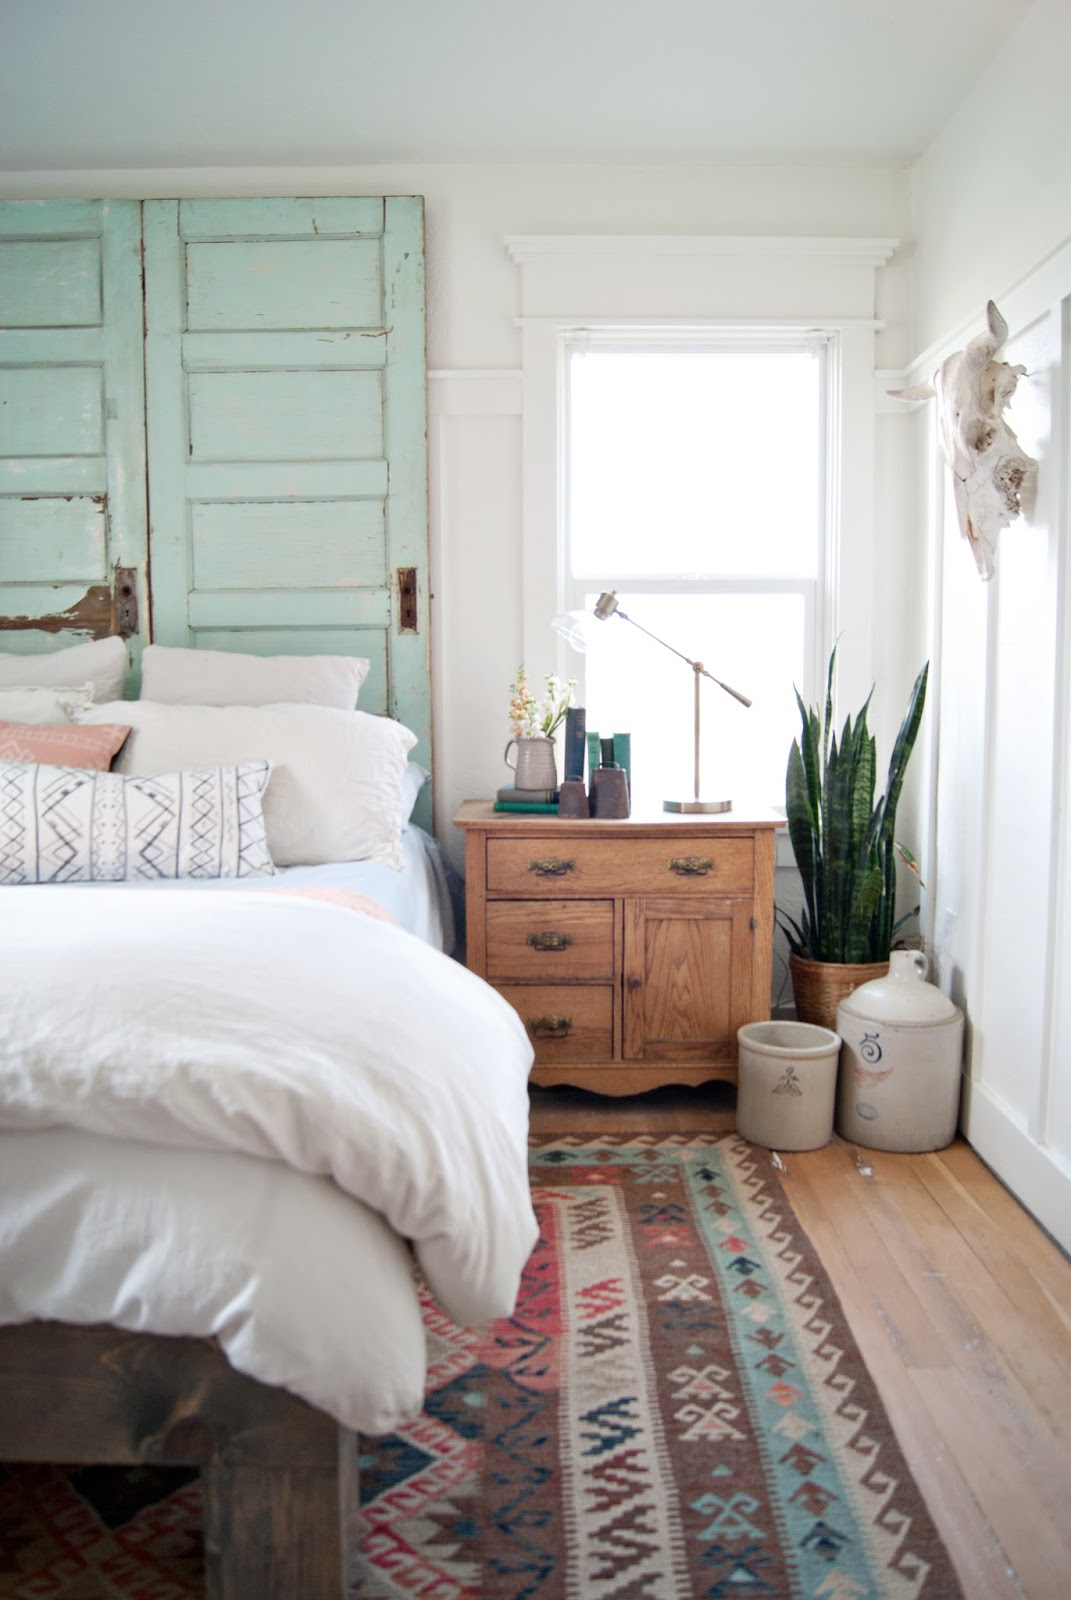 Farmhouse Master Bedroom In Country Living Magazine Averie Lane Farmhouse Master Bedroom In